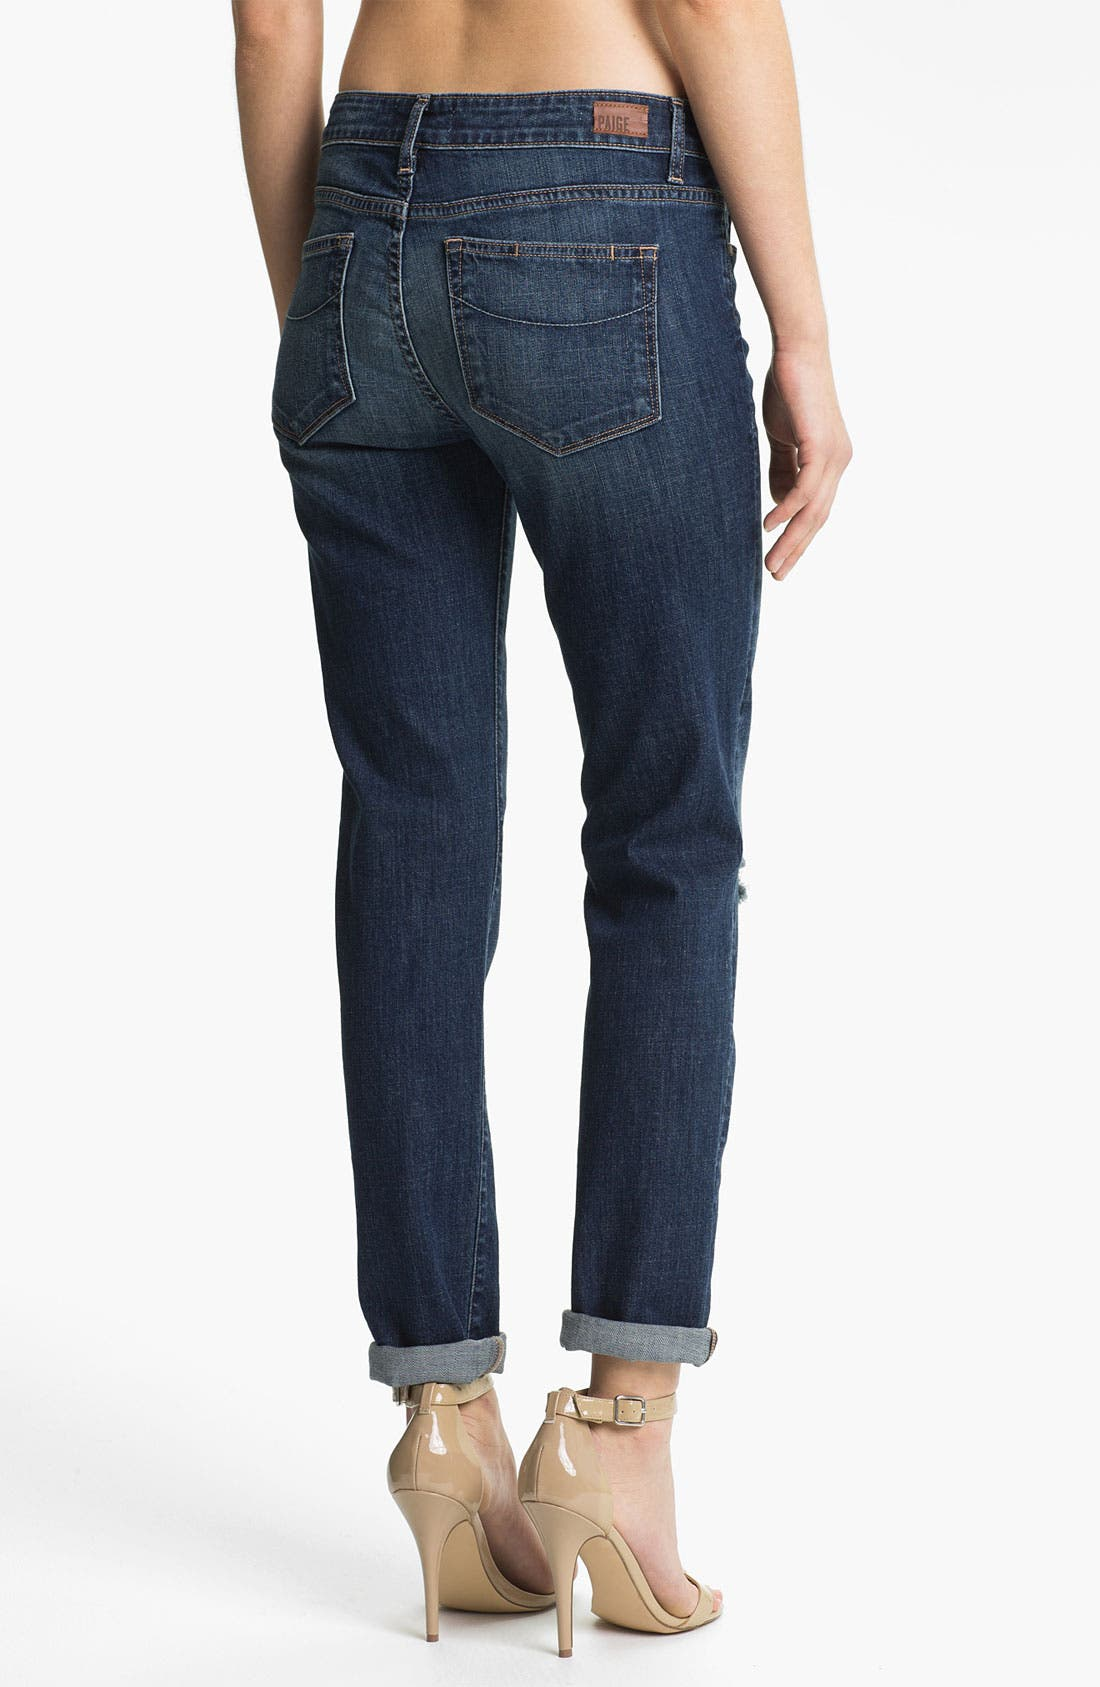 Alternate Image 2  - Paige Denim 'Jimmy Jimmy' Distressed Boyfriend Jeans (Tawni Destruction)